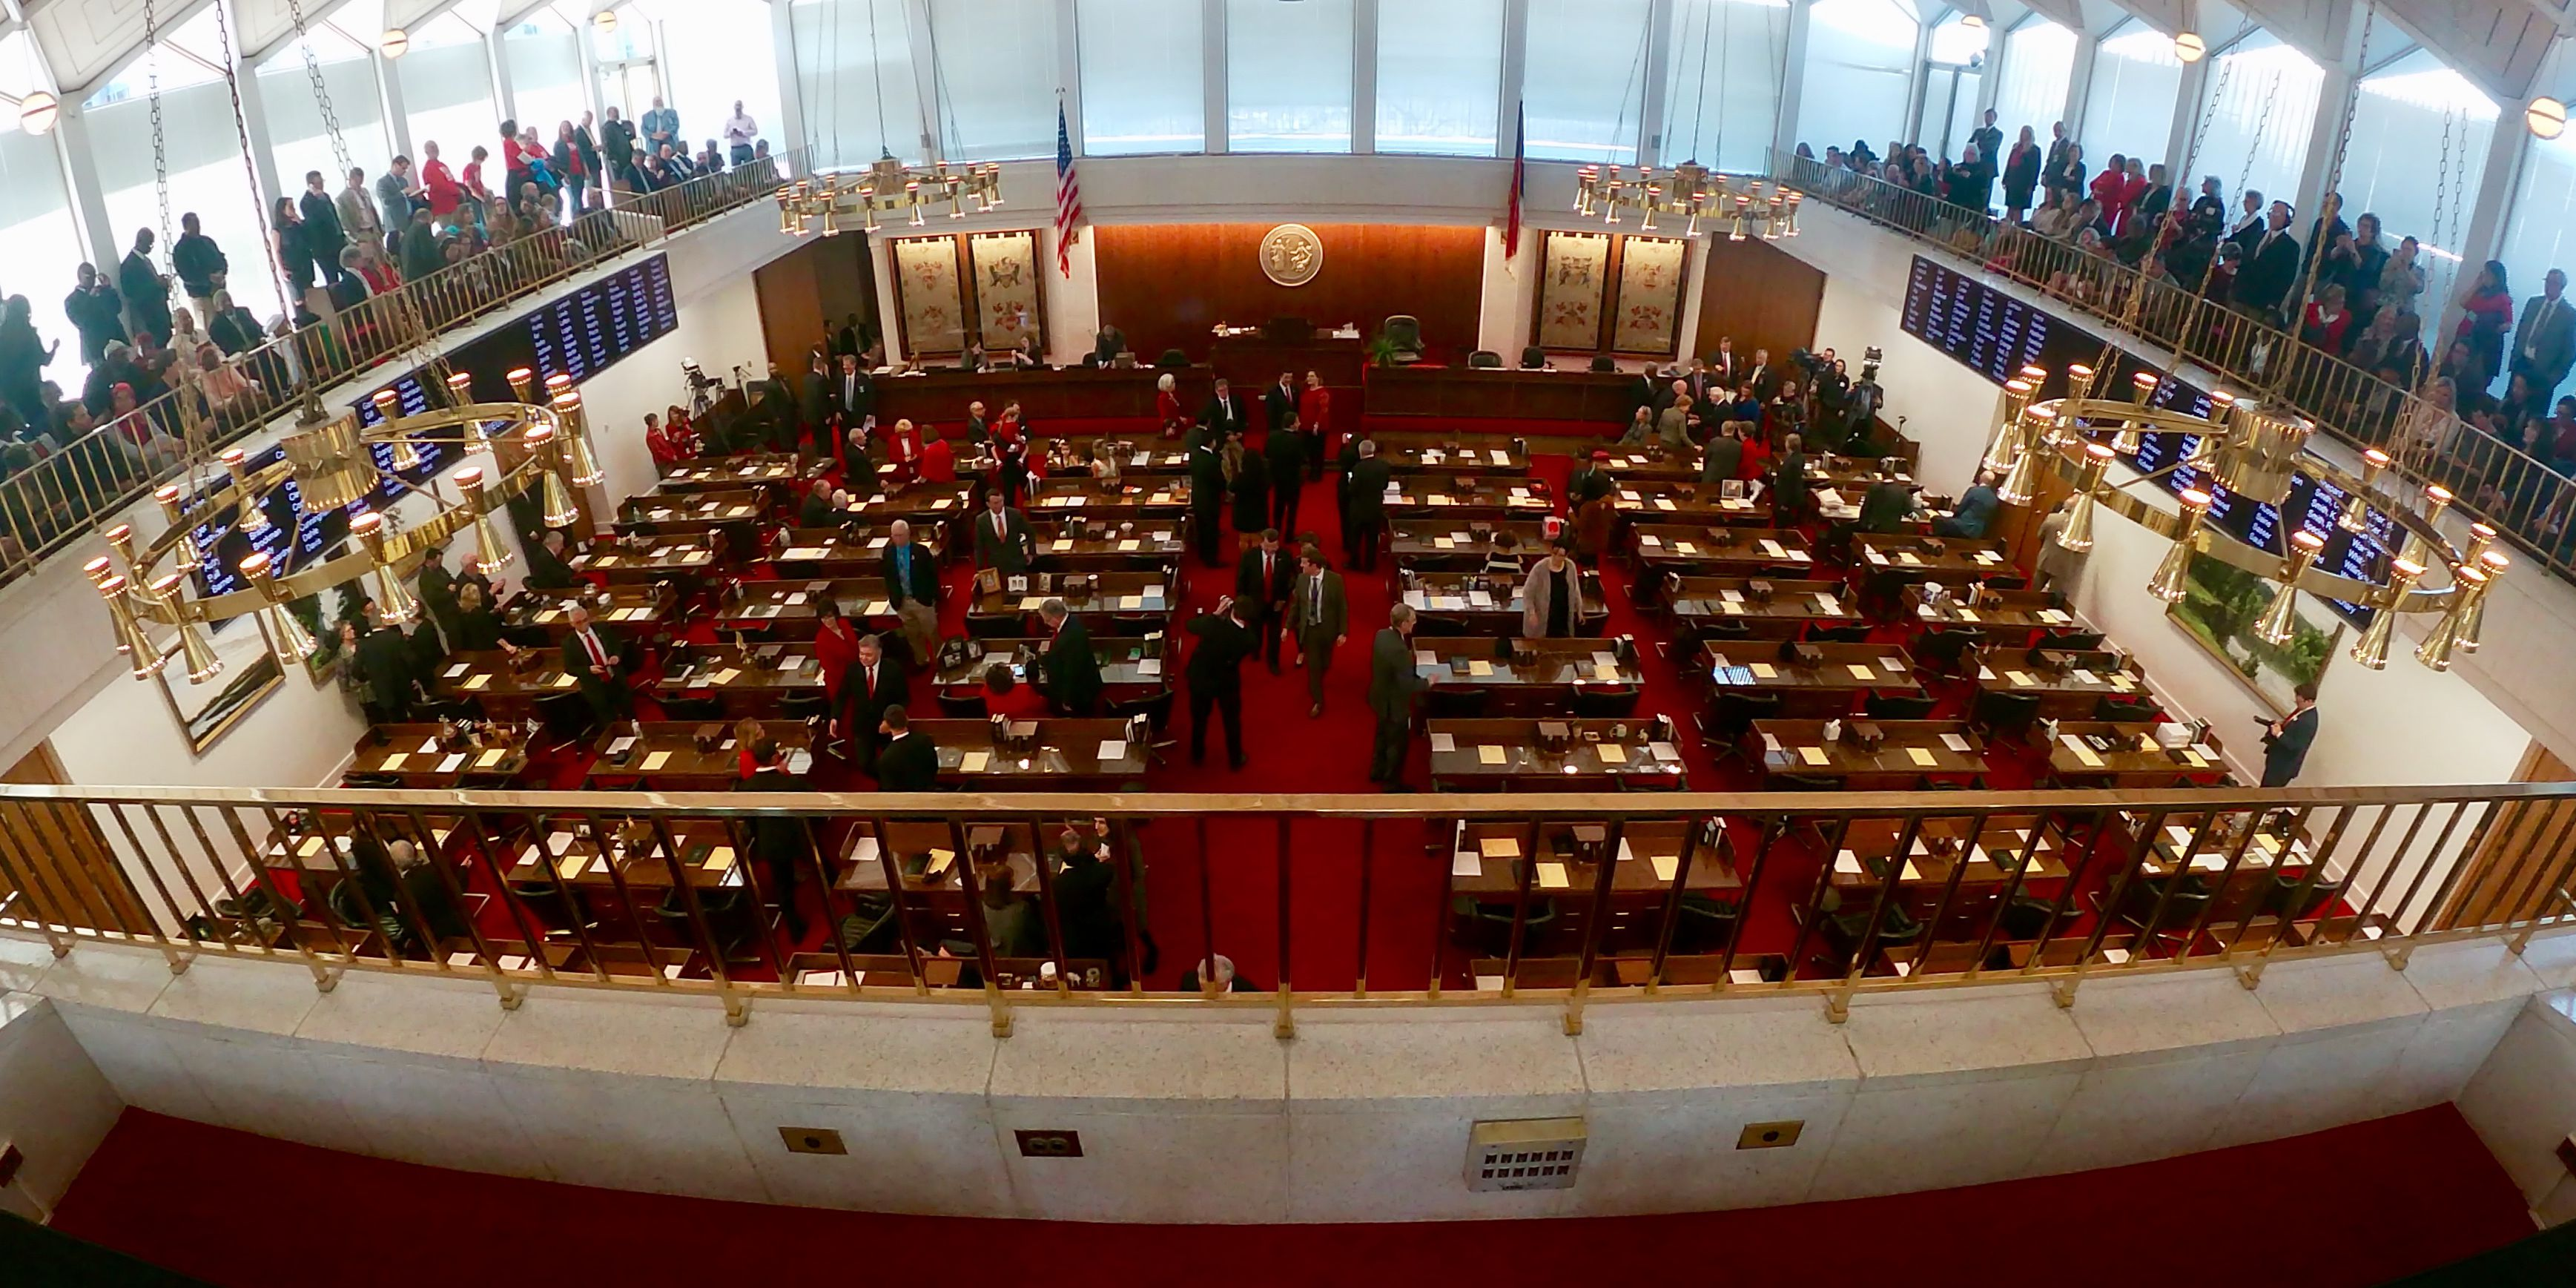 NC House moving forward on video telecasts of sessions after 115-1 vote